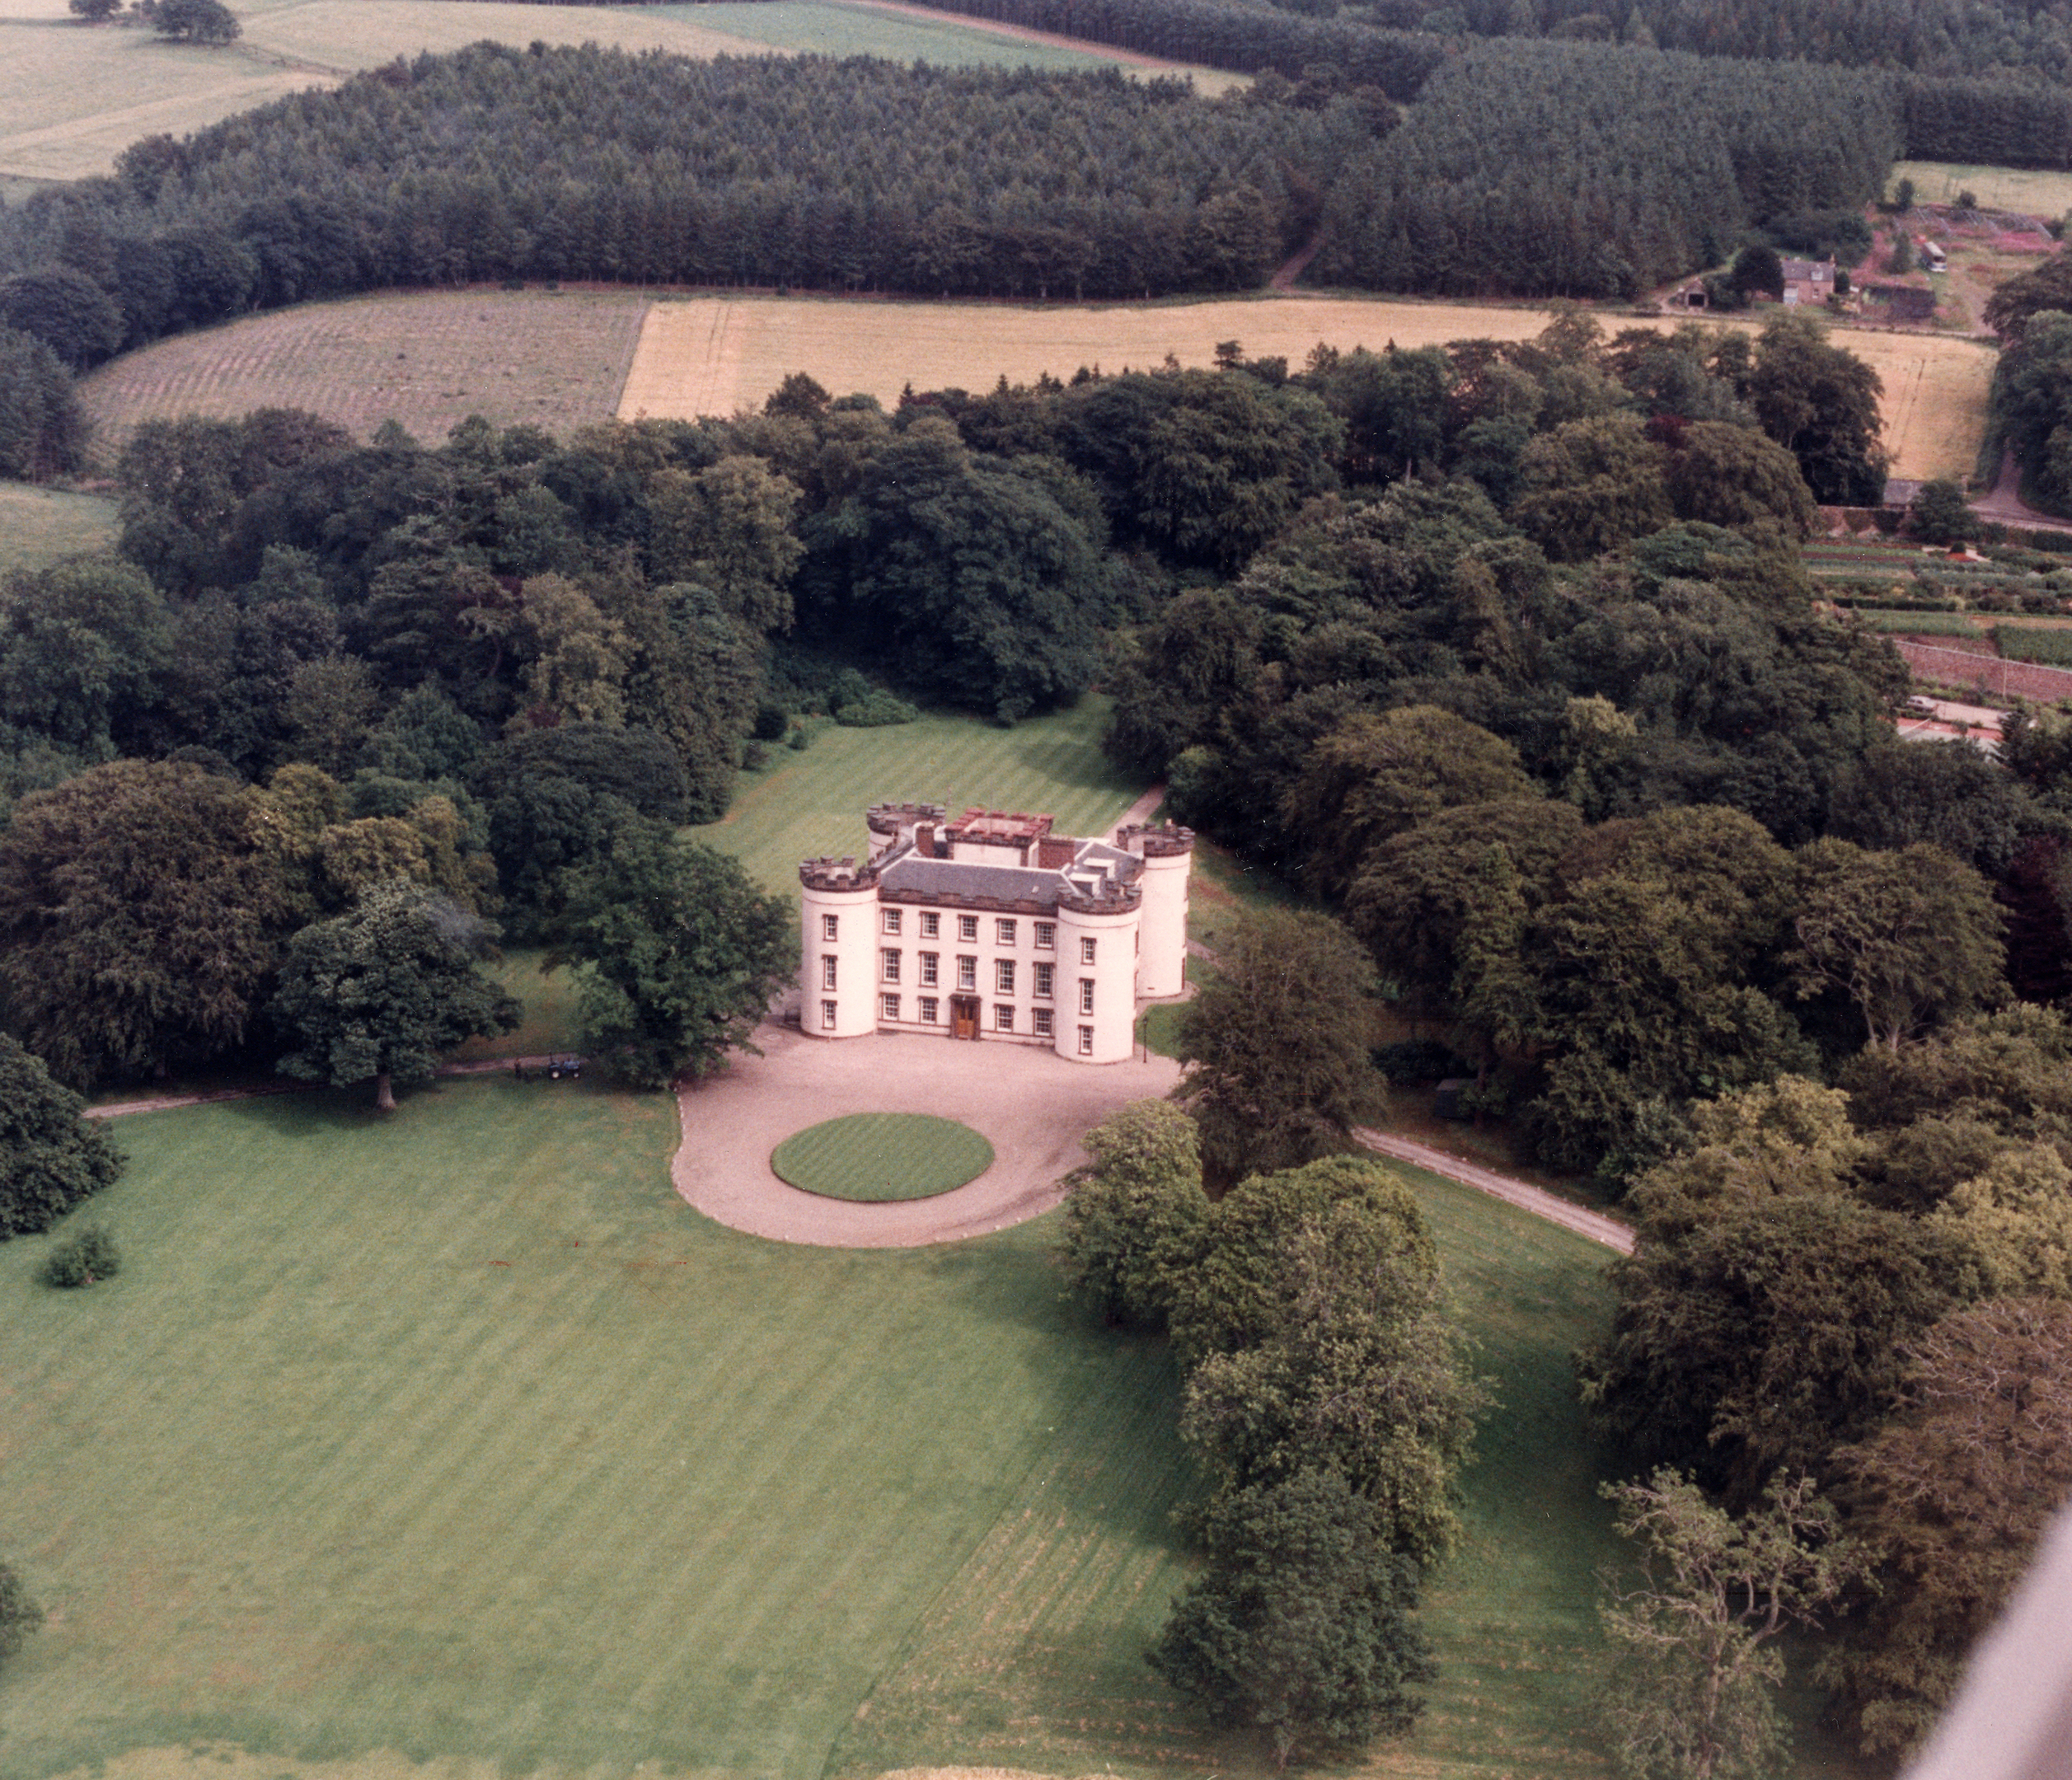 An aerial view showing the extensive grounds of Hatton Castle, near Turriff.